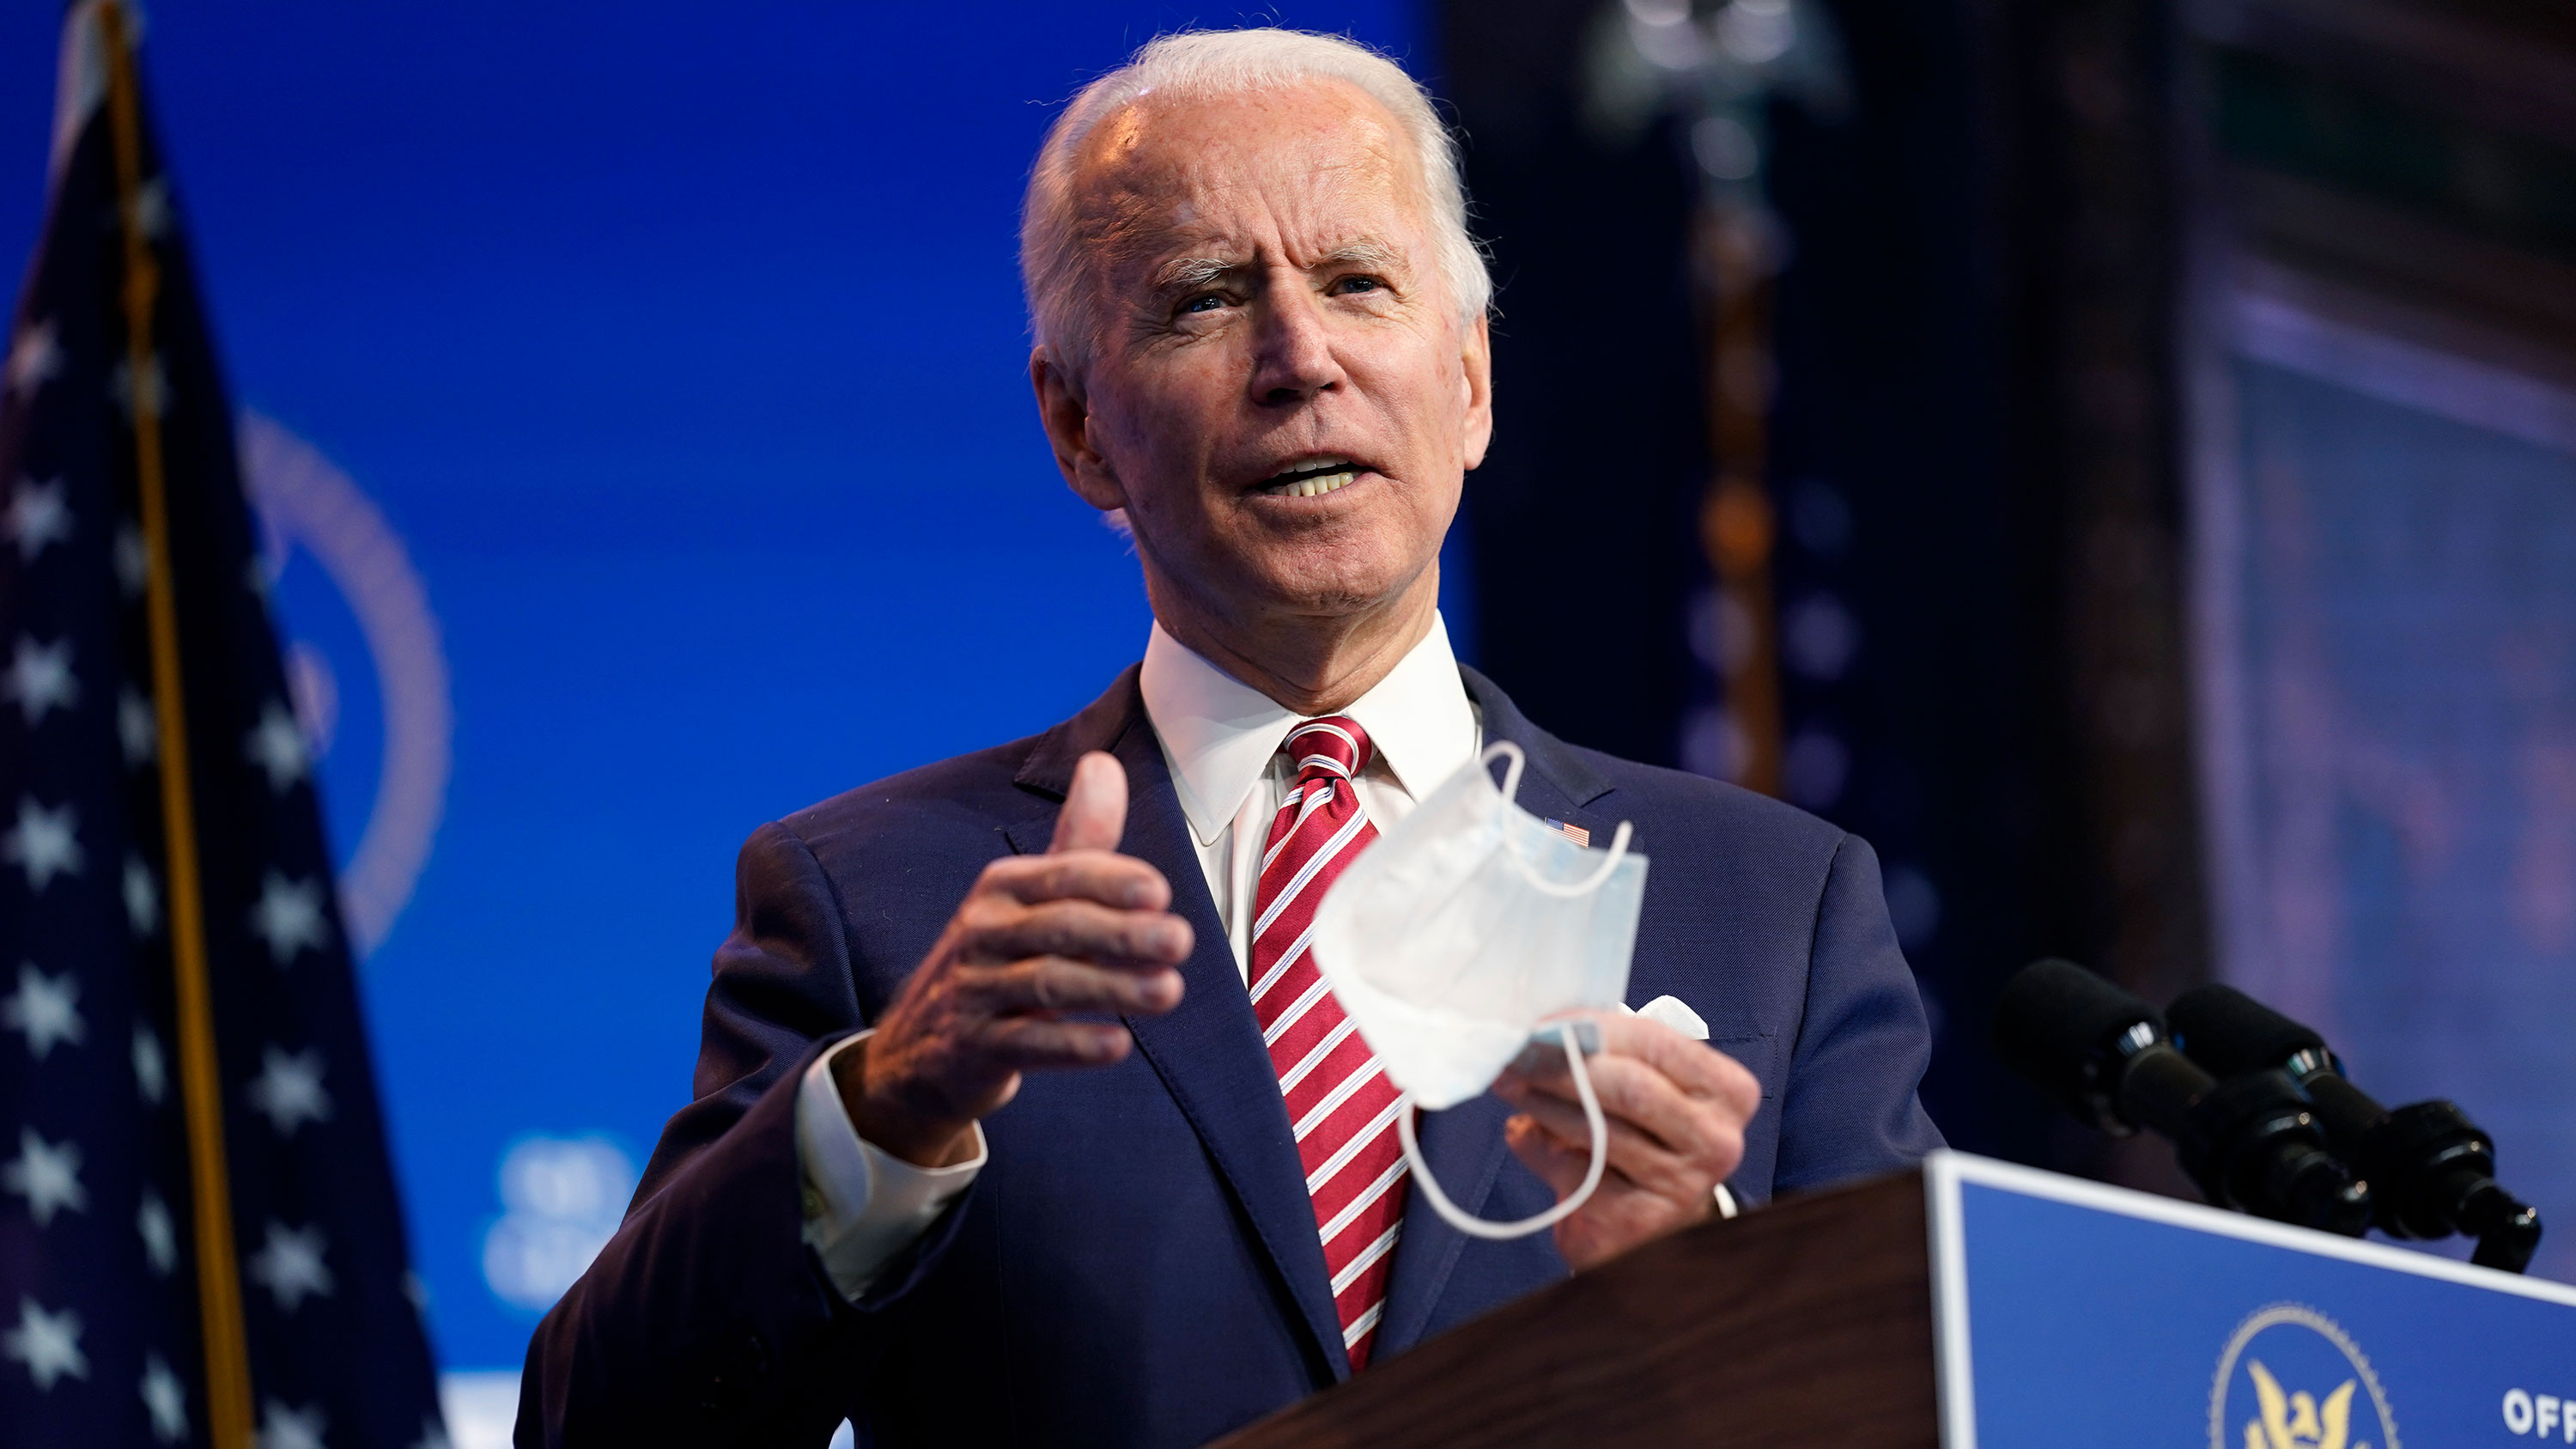 President-elect Joe Biden speaks about economic recovery on Monday, November 16 in Wilmington, Delaware.